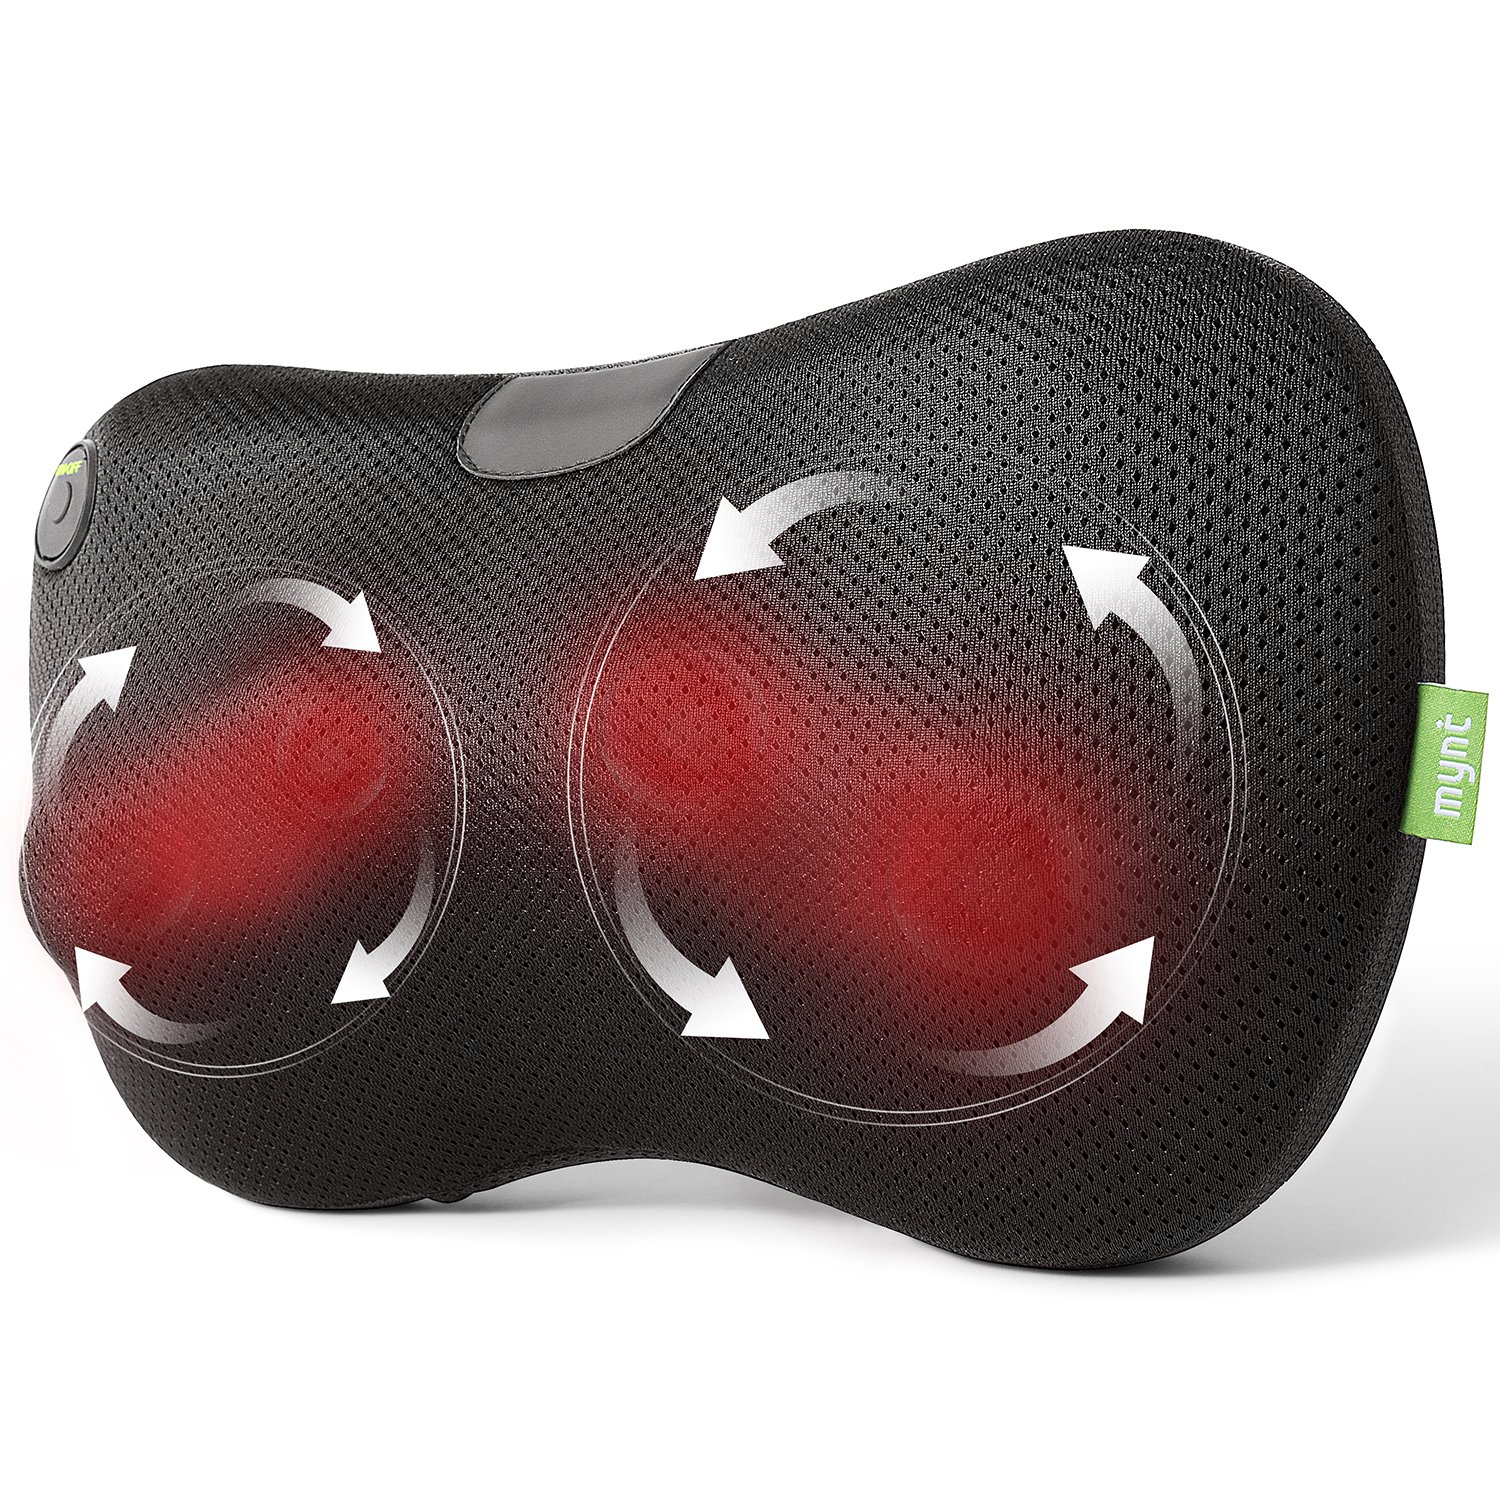 Mynt Shiatsu Massage Pillow with Heat for Neck, Back, Shoulders, Arms and Legs. FDA Approved, Lightweight, Compact Cushioned Portable Massager use at Home, Office, Car, and More